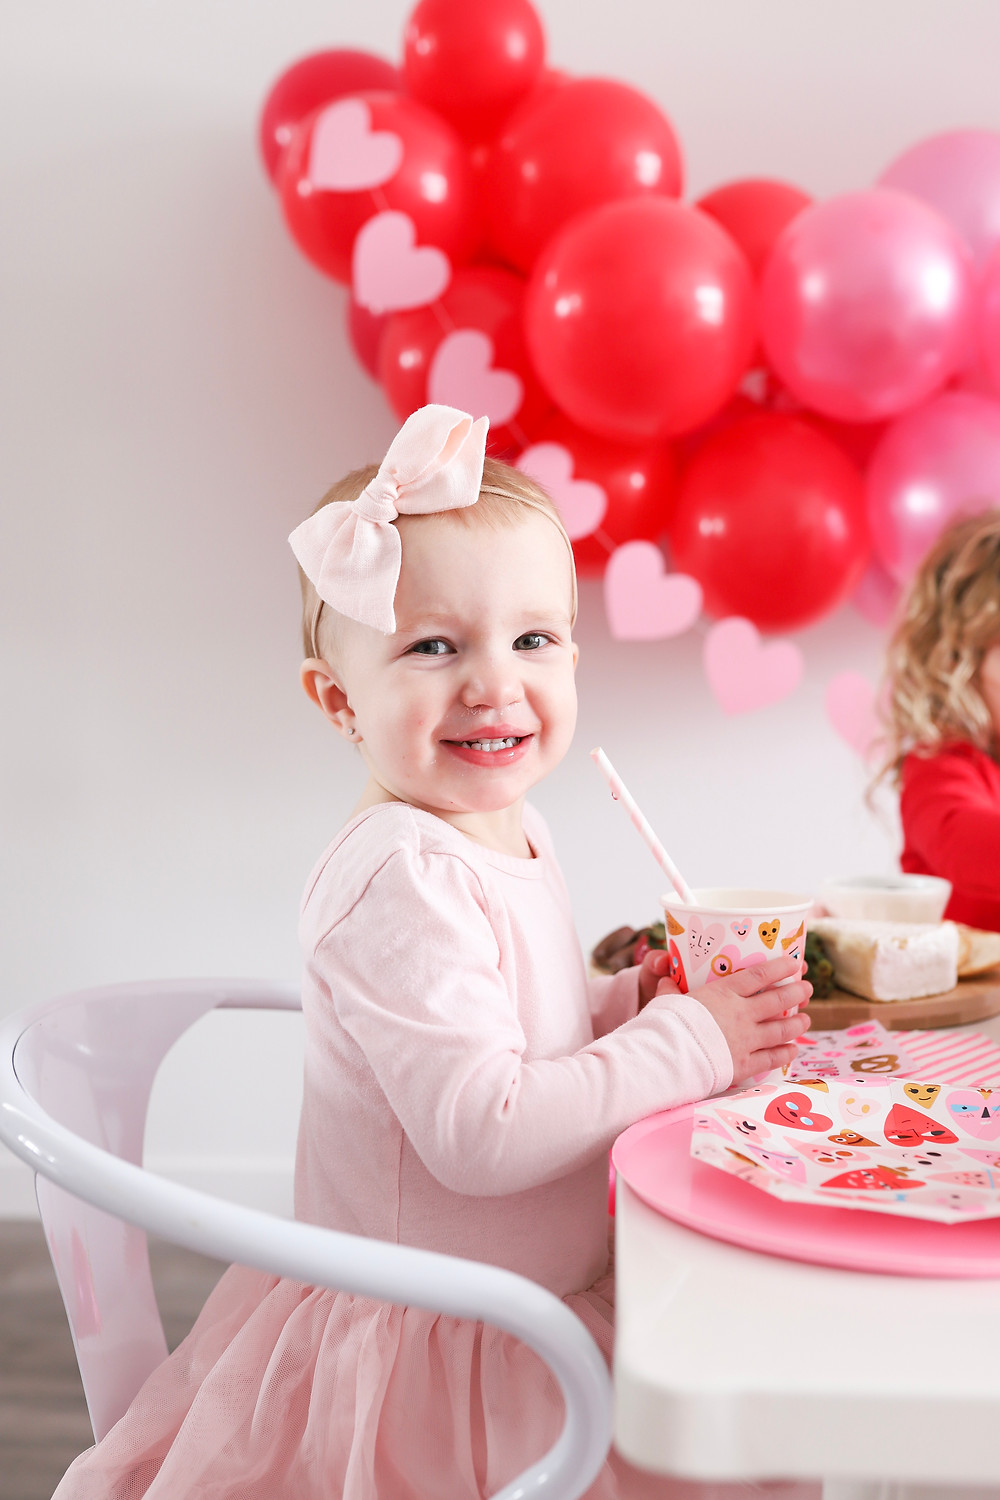 A little girl smiling at the camera holding a cup at a Valentine's Day party.